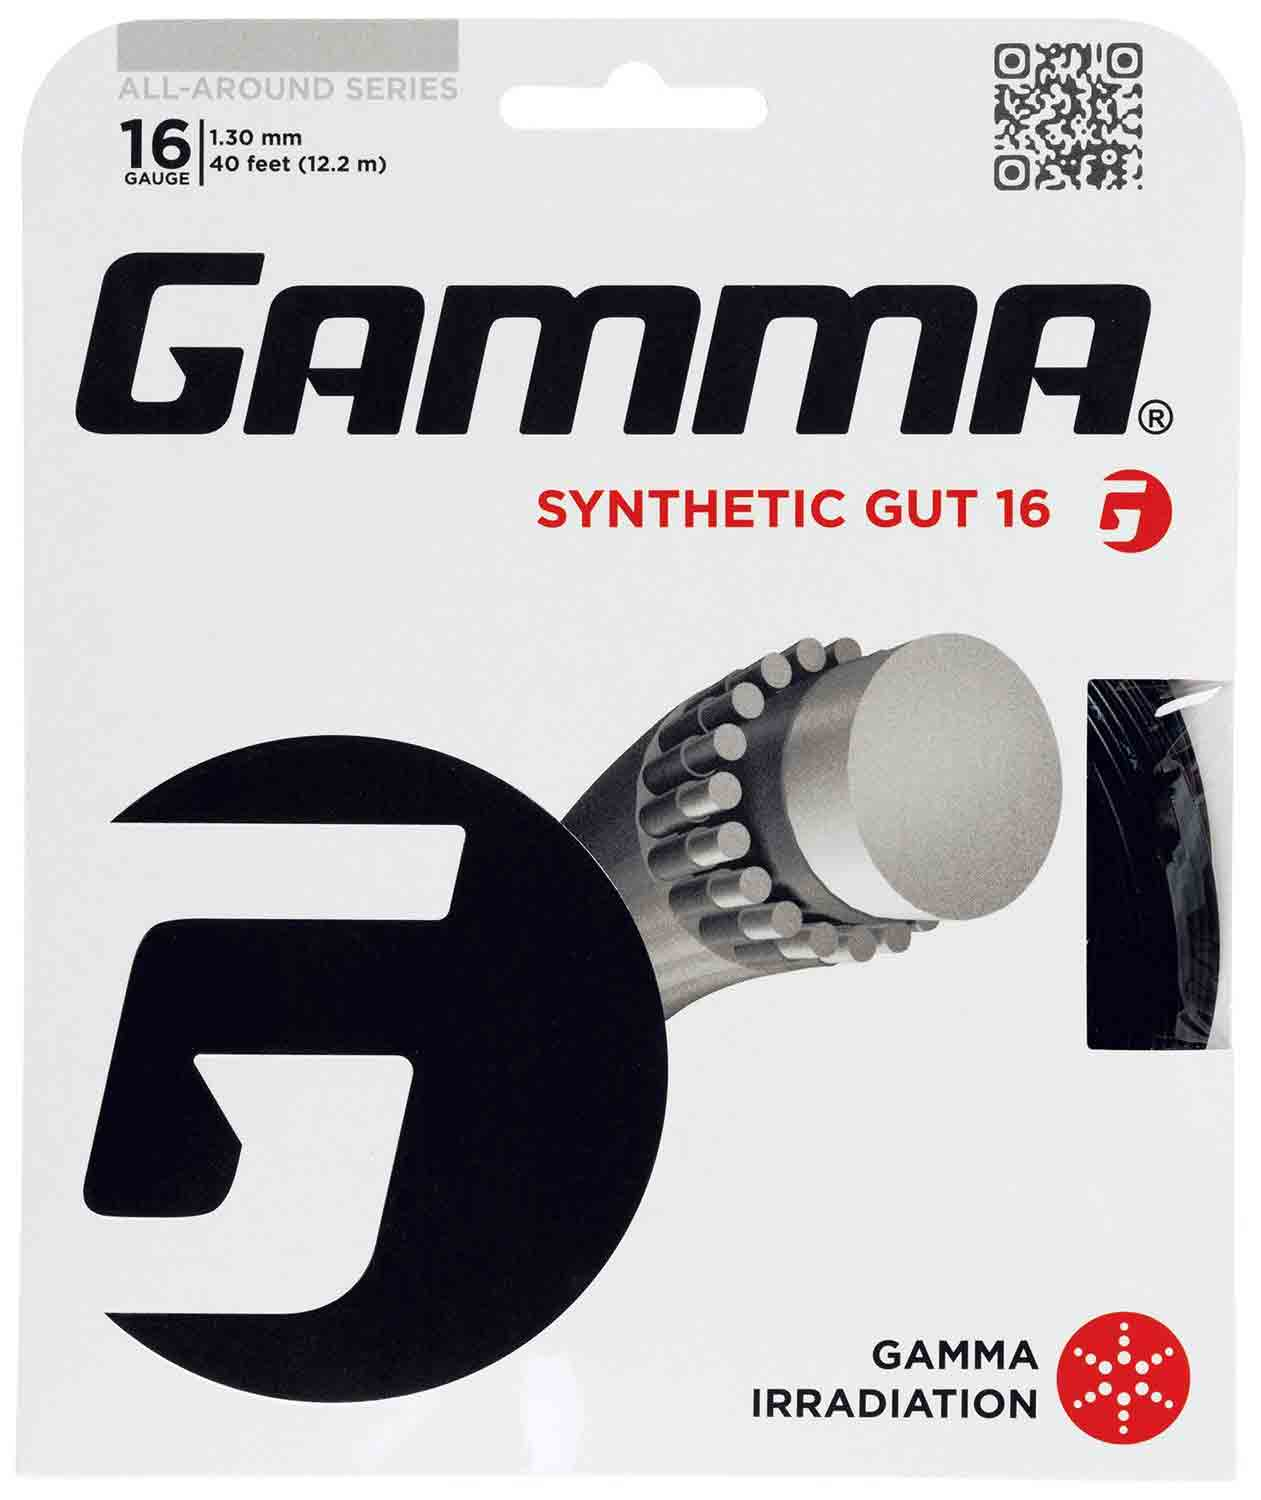 Gamma Synthetic Gut Tennis String. Tennis String, Tennis Stringing, Tennis Restringing, Tennis Restring, Change Tennis String, Tennis String Repair, Tennis String Replacement, Singapore